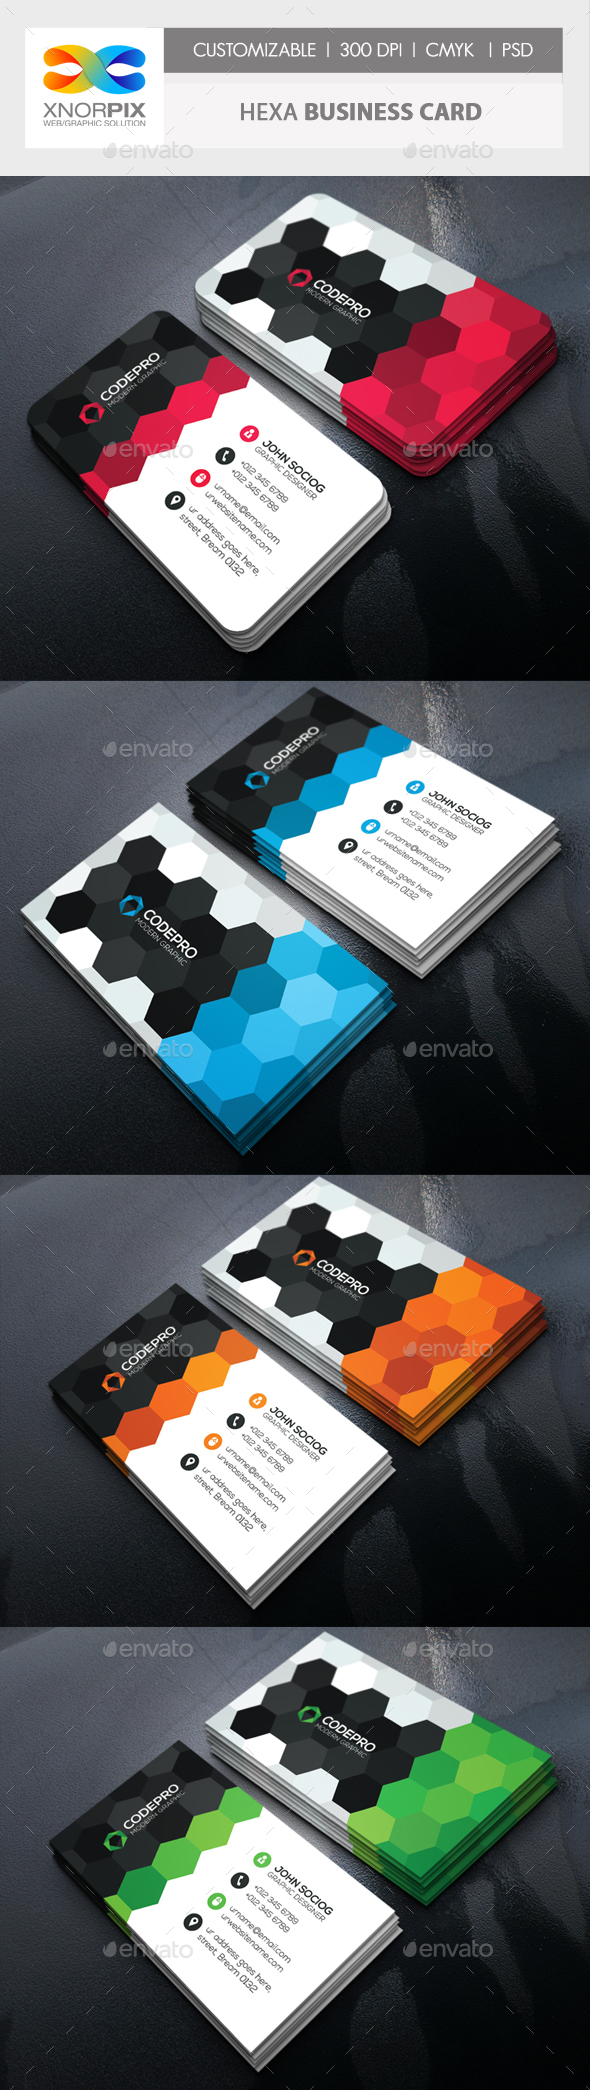 Hexa Business Card - Corporate Business Cards